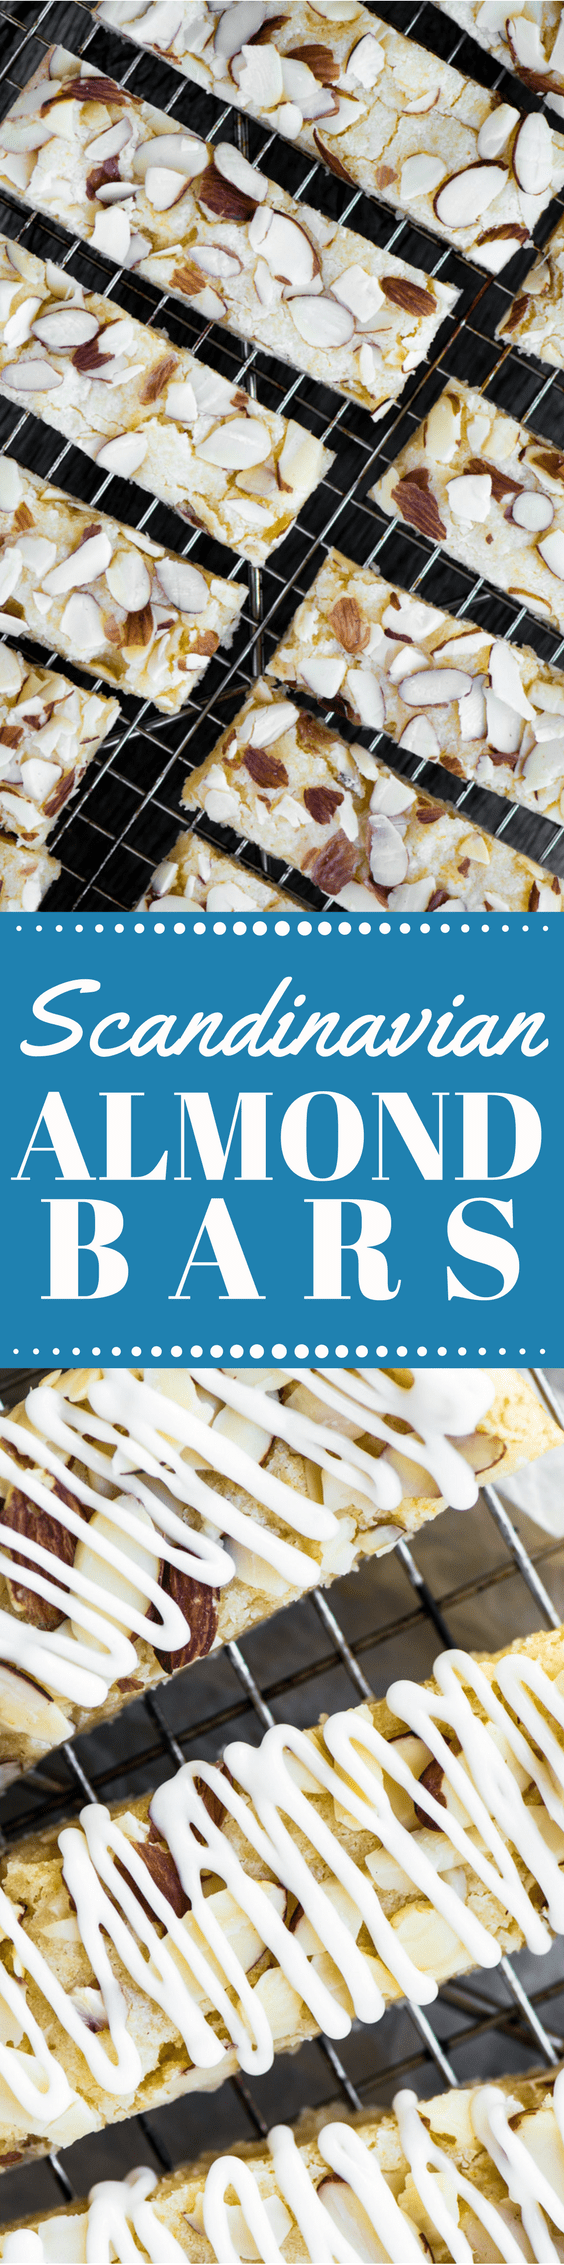 Scandinavian Almond Bars are soft, chewy shortbread bars jam packed with almond flavor ~ they freeze beautifully, and make fabulous holiday gifts. #bars #almondbars #Christmascookies #holidaycookies #almonds #shortbread #almondshortbread #shortbreadbars #dessert #holidaydessert #christmasdessert #scandinavian #swedish